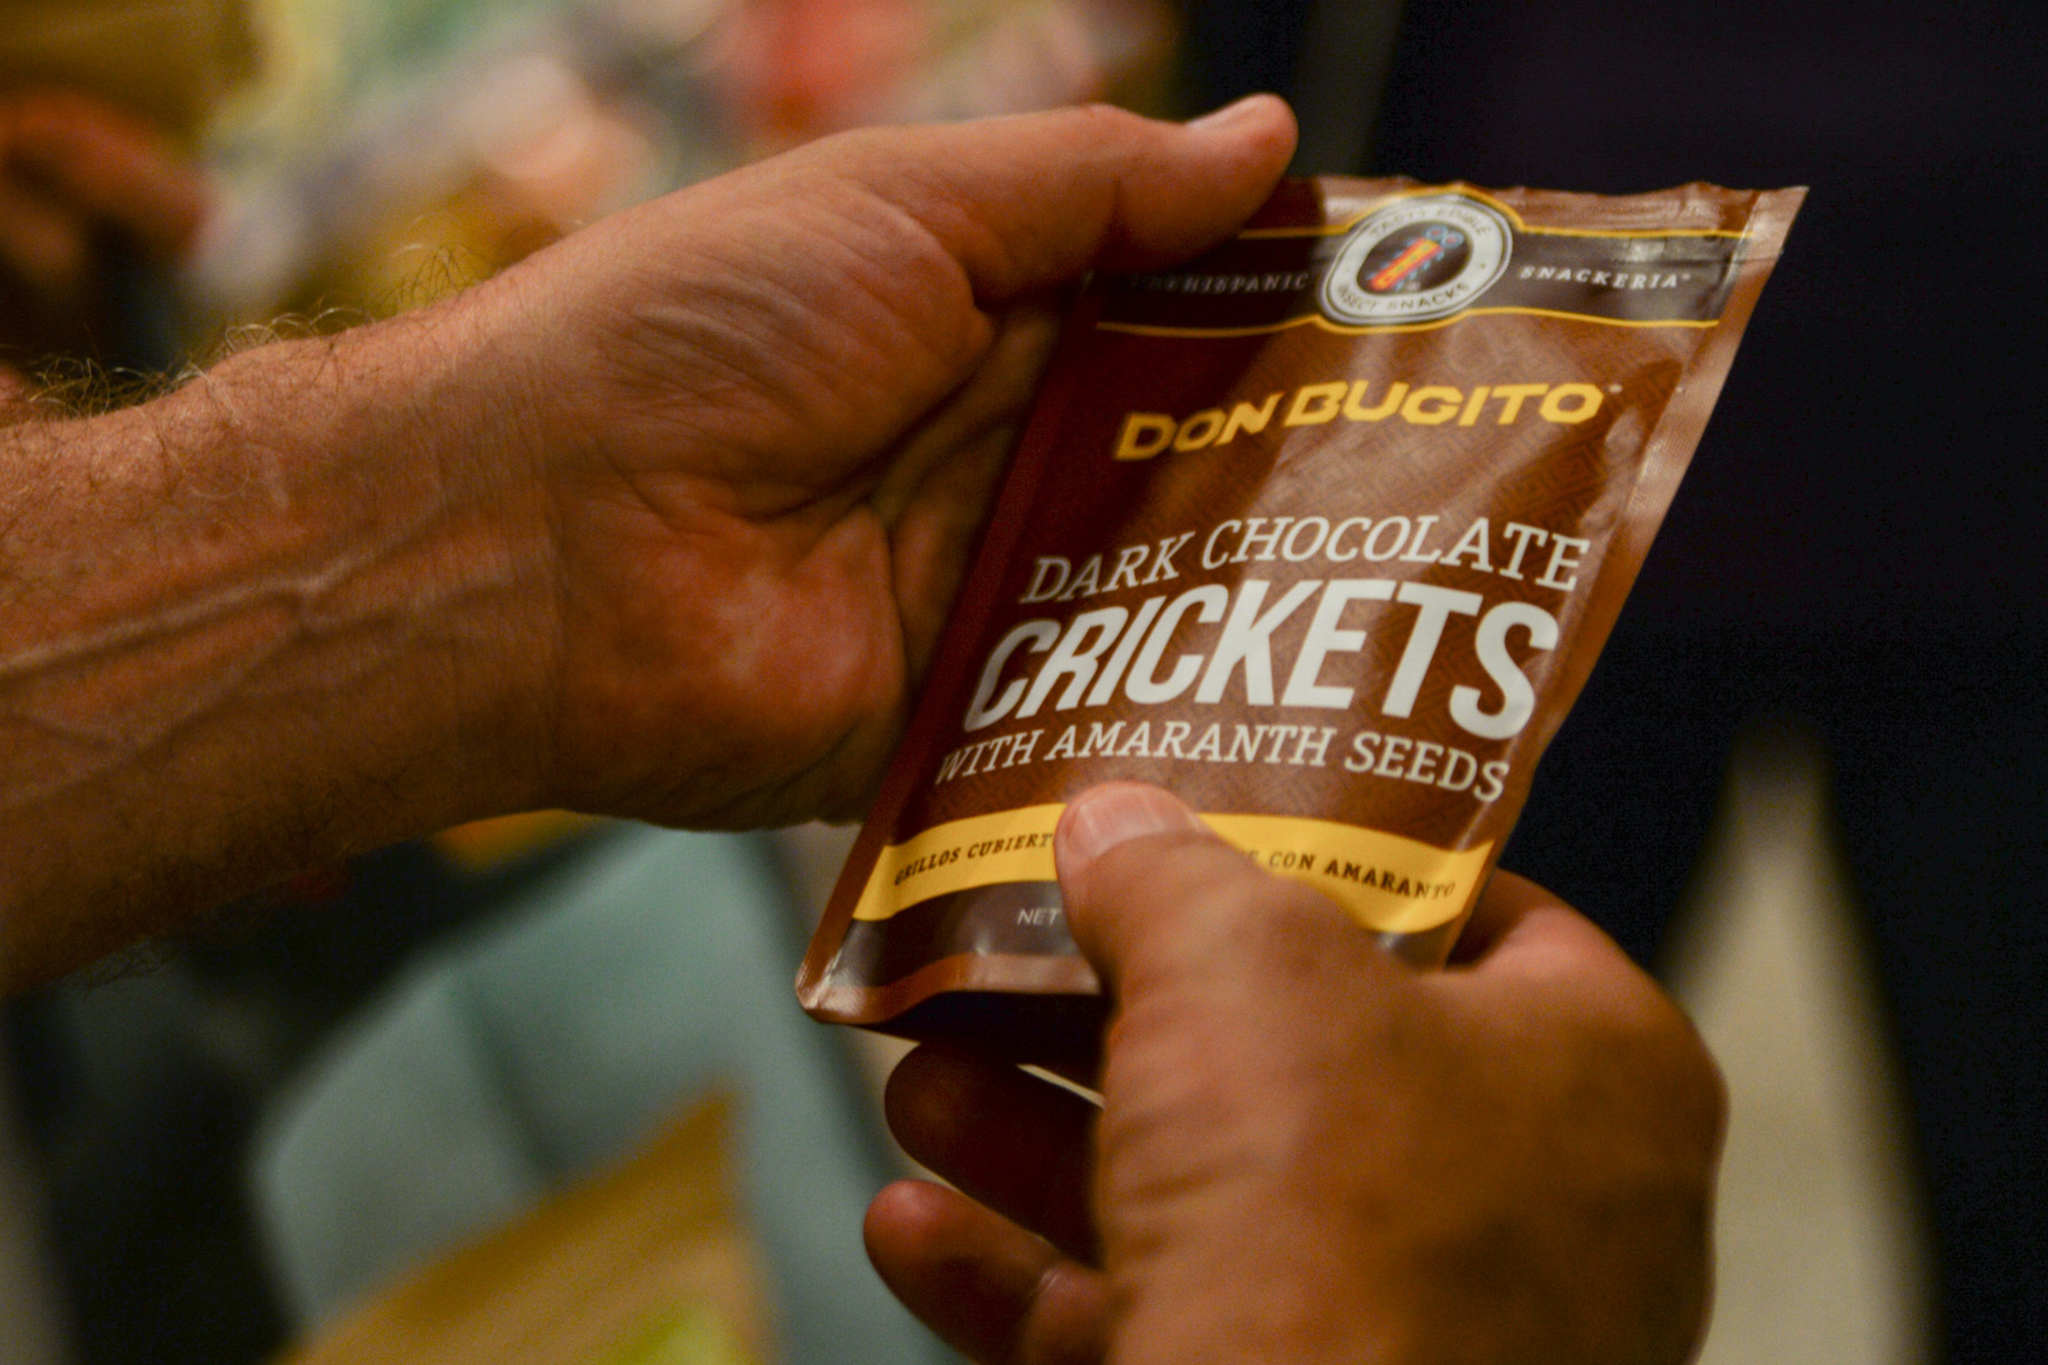 Jim Hughes examines a pack of Chocolate Crickets at MOM´s Organic Market in Center City.